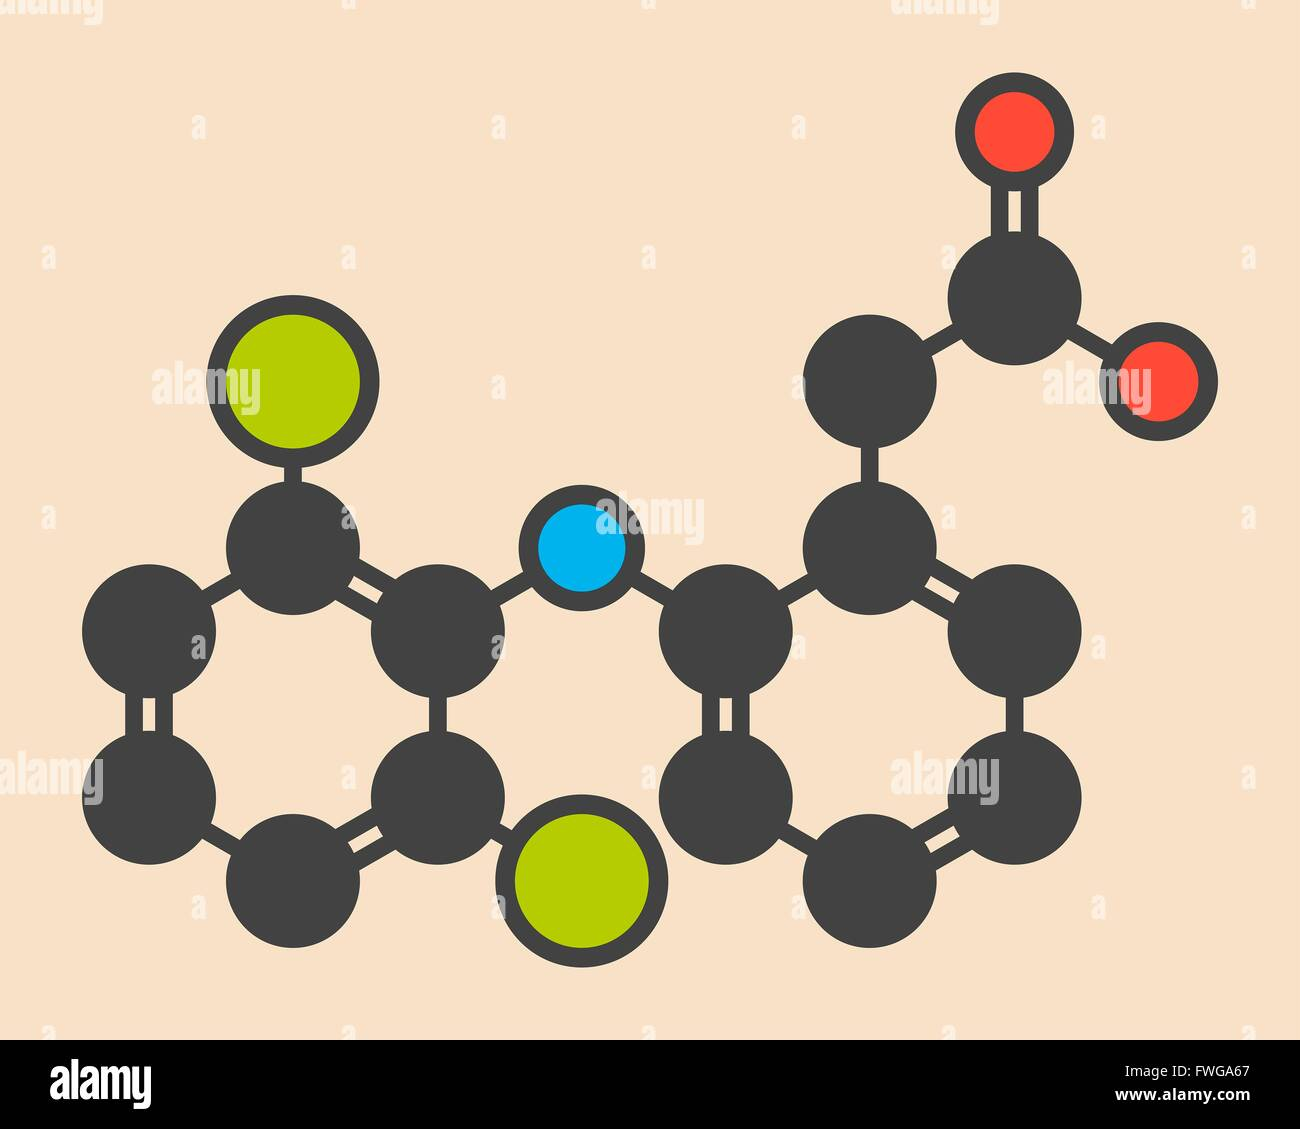 Diclofenac Stock Photos Diclofenac Stock Images Alamy